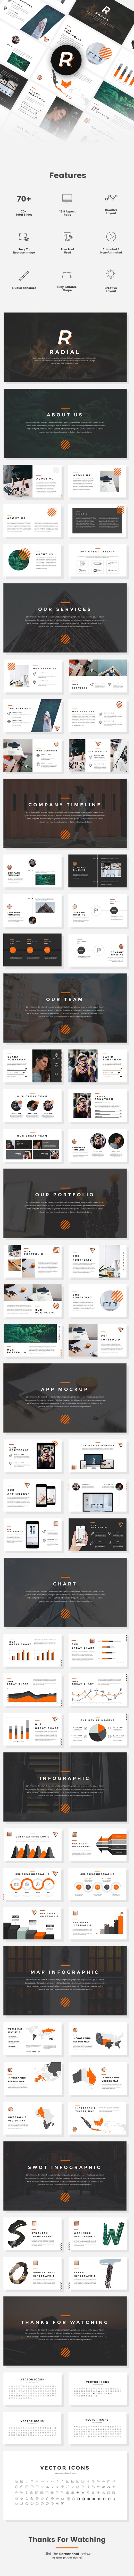 Radial - Creative Google Slides Template - Google Slides Presentation Templates